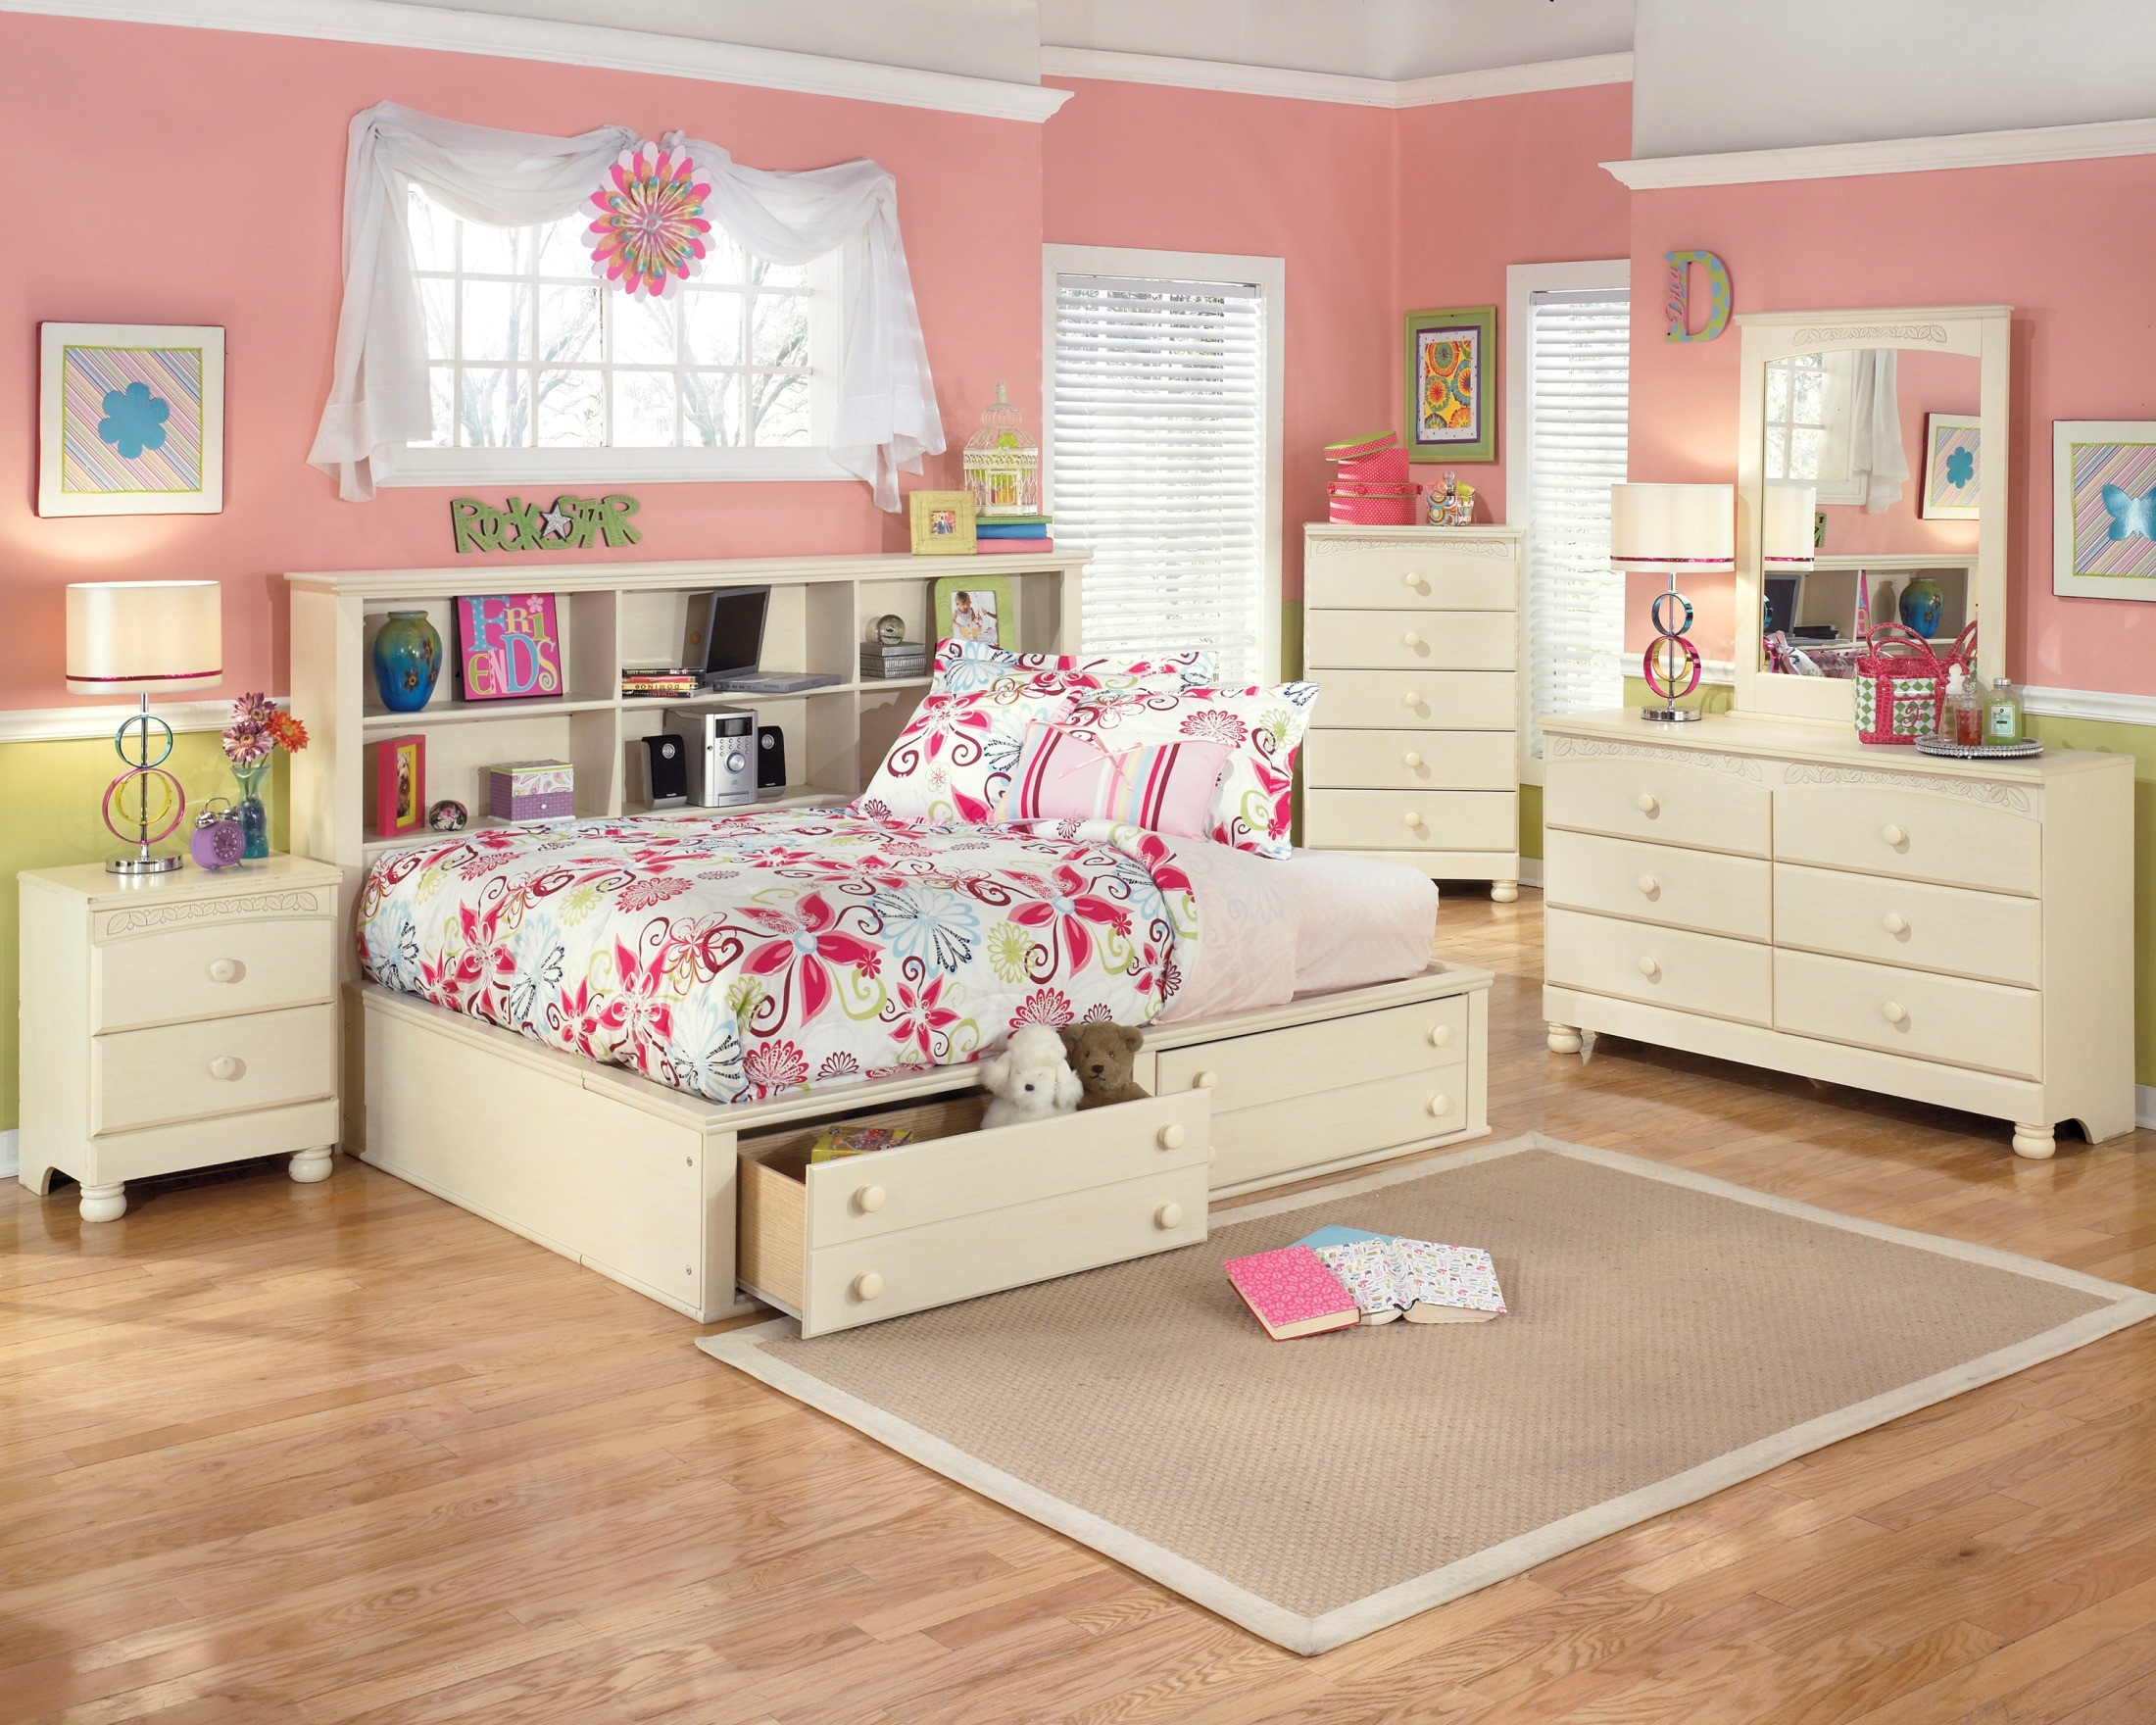 Cottage retreat youth bedside storage bedroom set from - Cottage retreat bedroom furniture ...